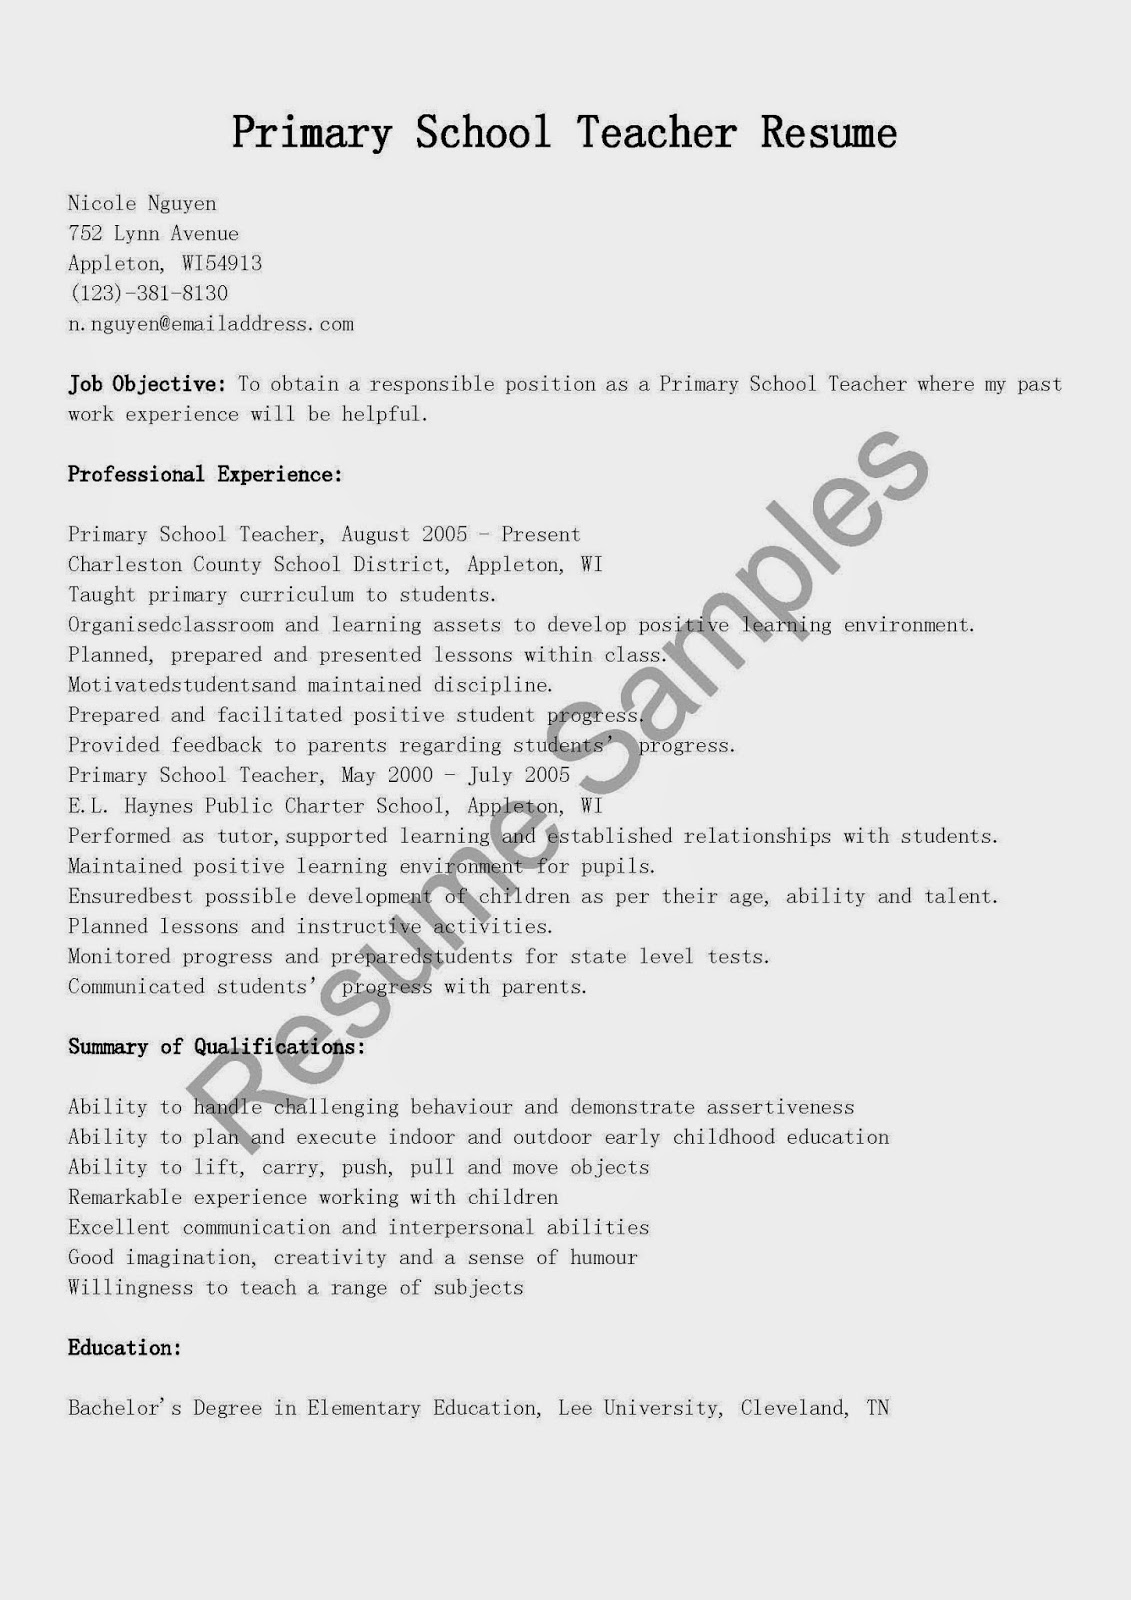 Test Manager Resume Sample India Sample Resume Primary Teacher India